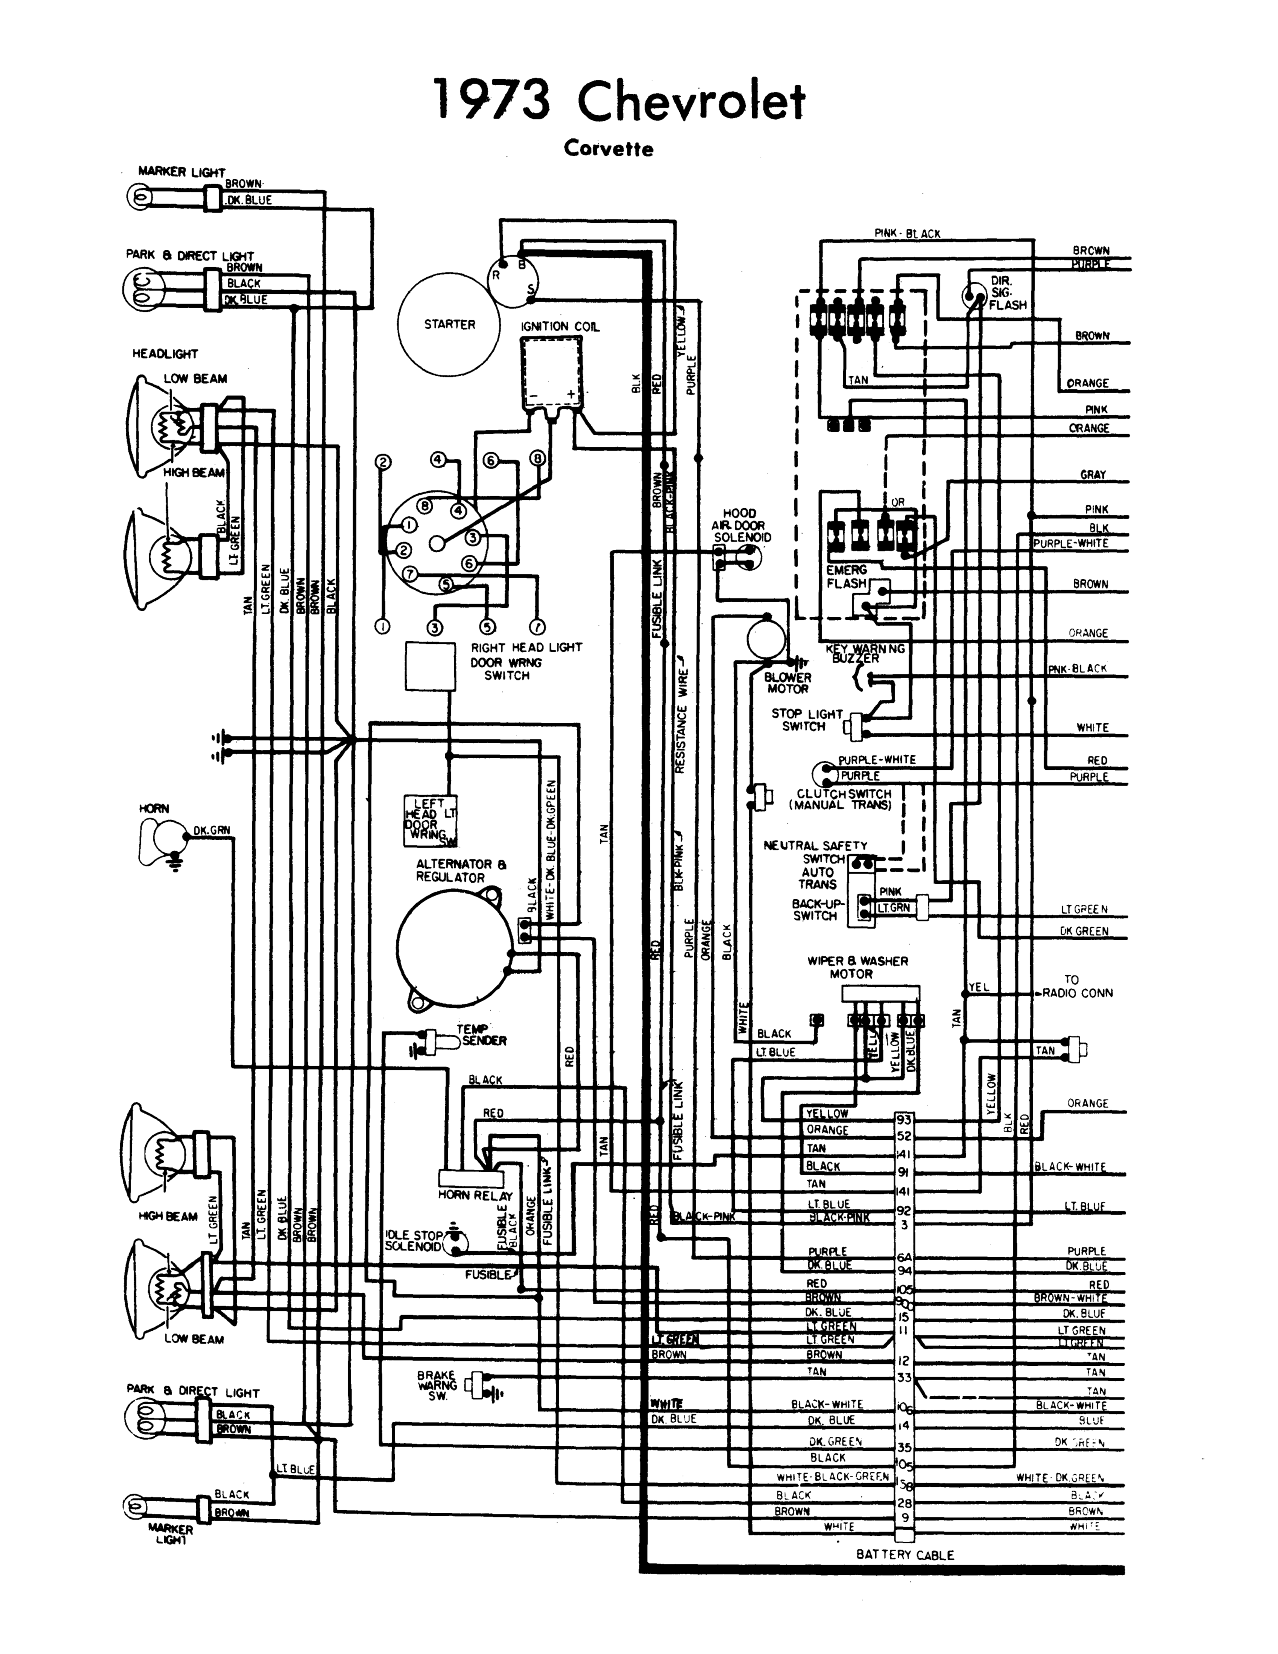 wiring diagram 1973 corvette | Chevy Corvette 1973 Wiring ...